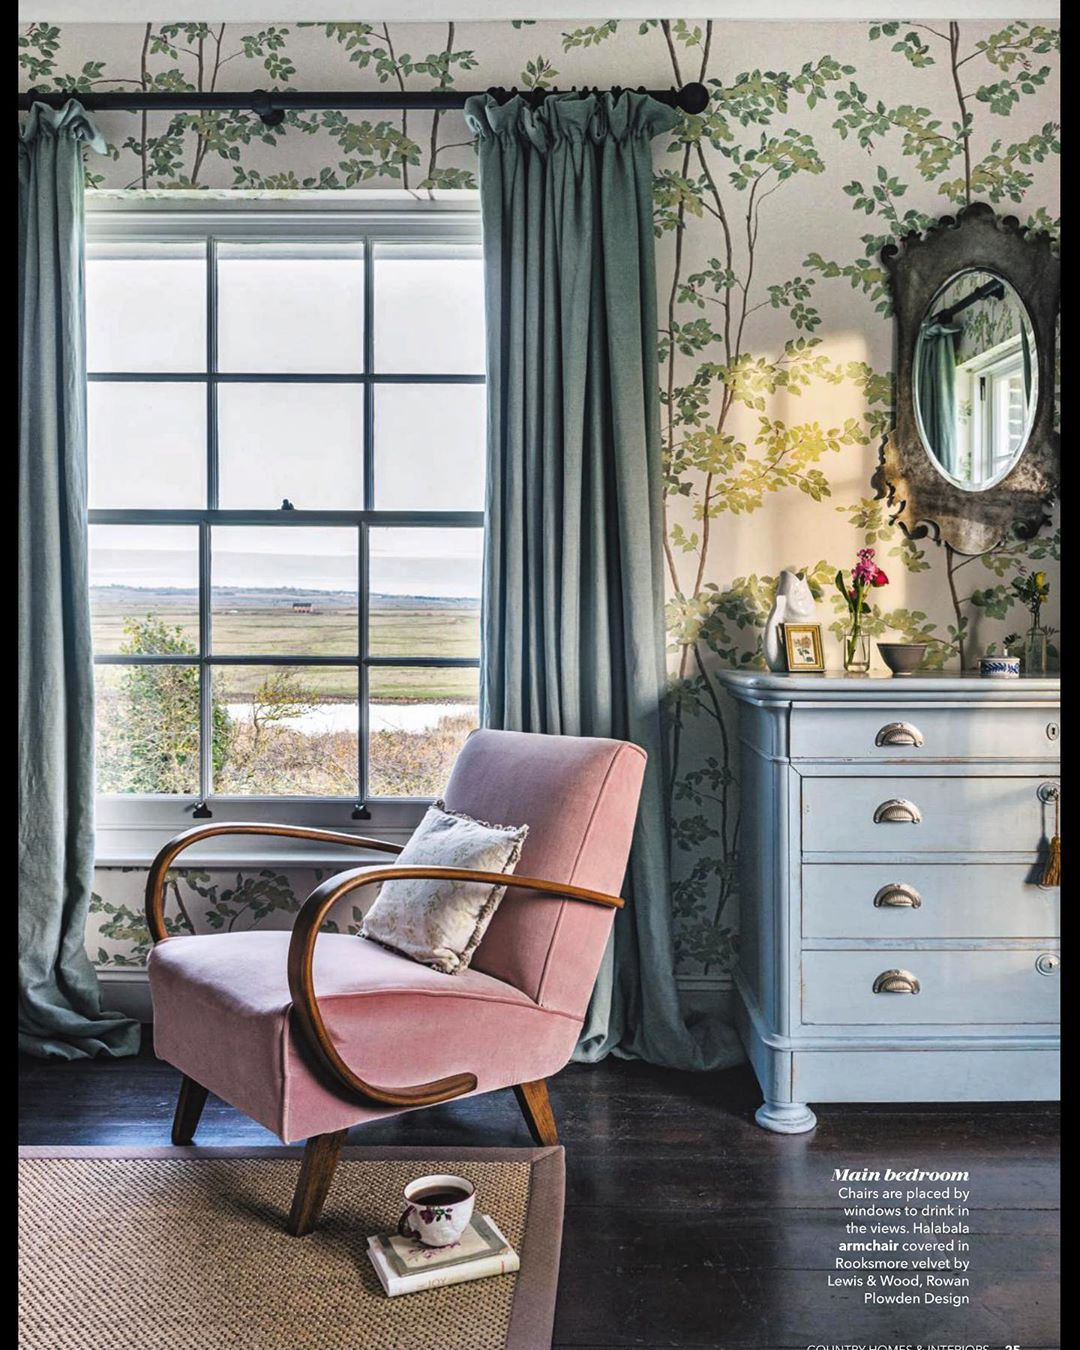 What A View To Wake Up To It S Elmleynature Farmhouse As Shot By Polly Eltes For Countryhomesmag We S In 2020 Country House Interior Home Decor Country House Decor